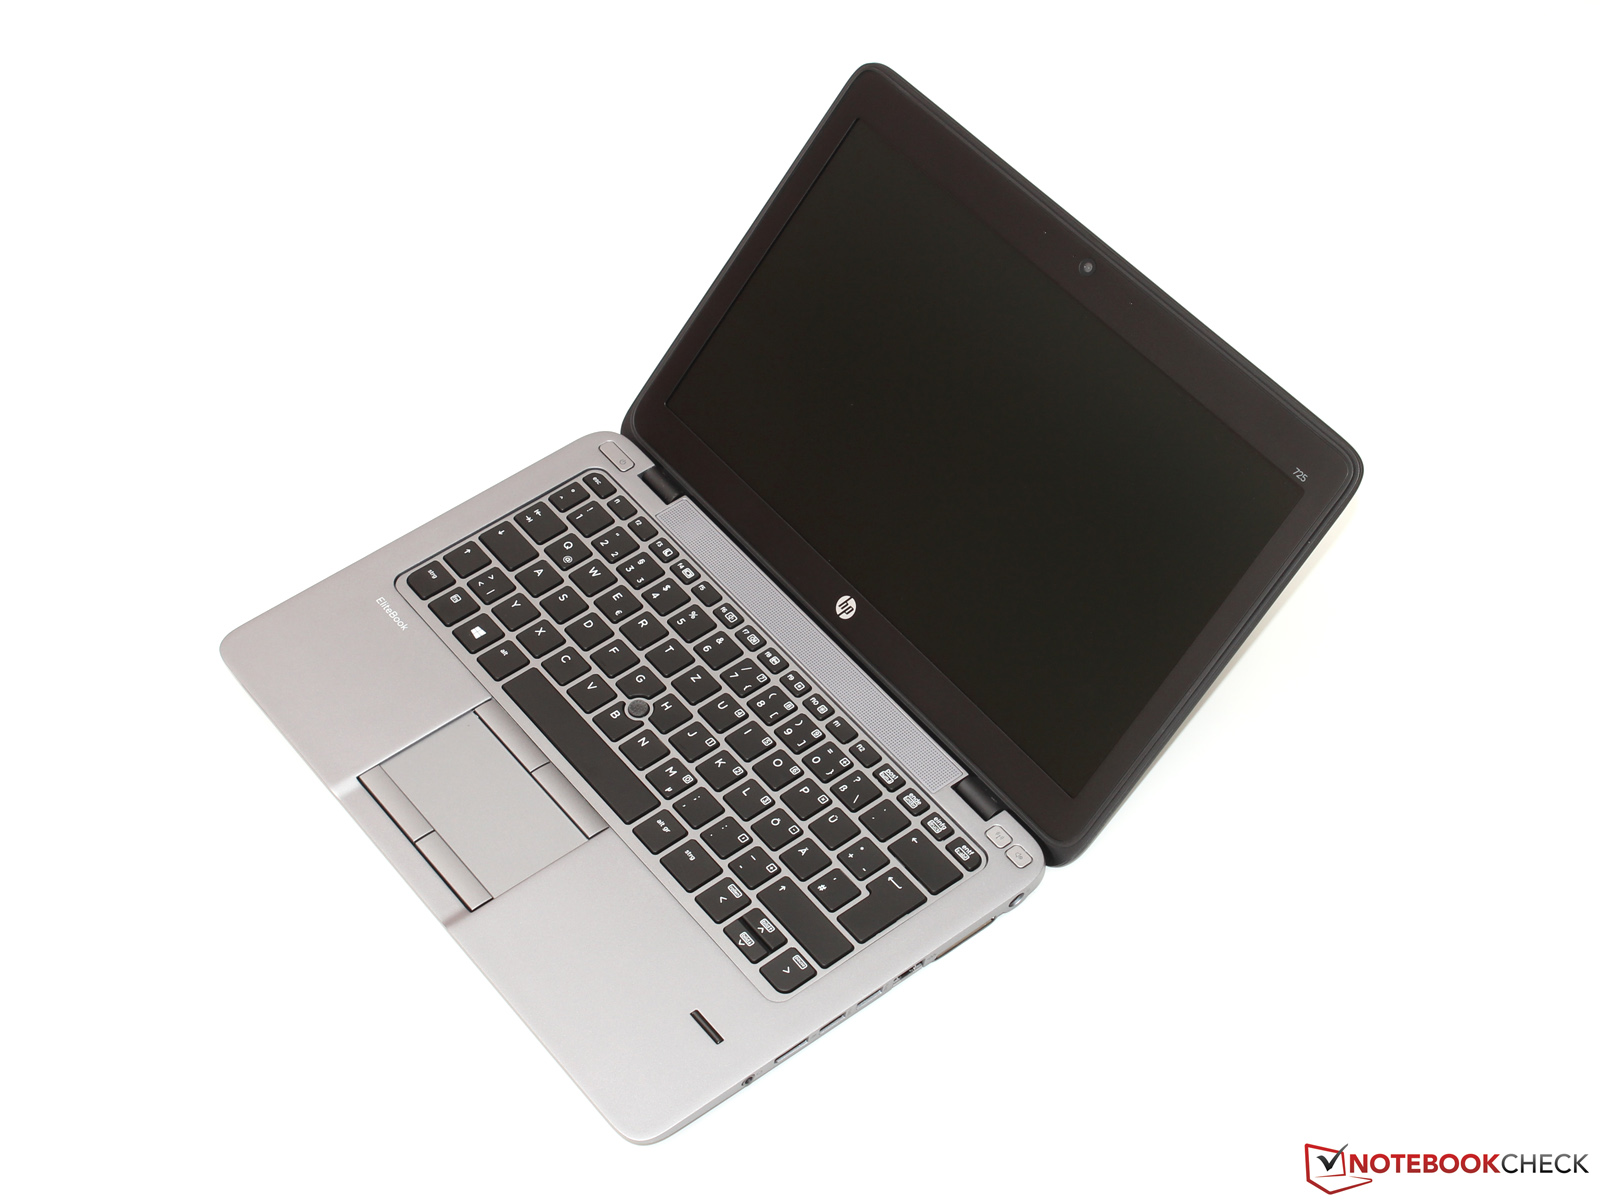 HP ELITEBOOK 755 G2 DRIVER FOR WINDOWS DOWNLOAD